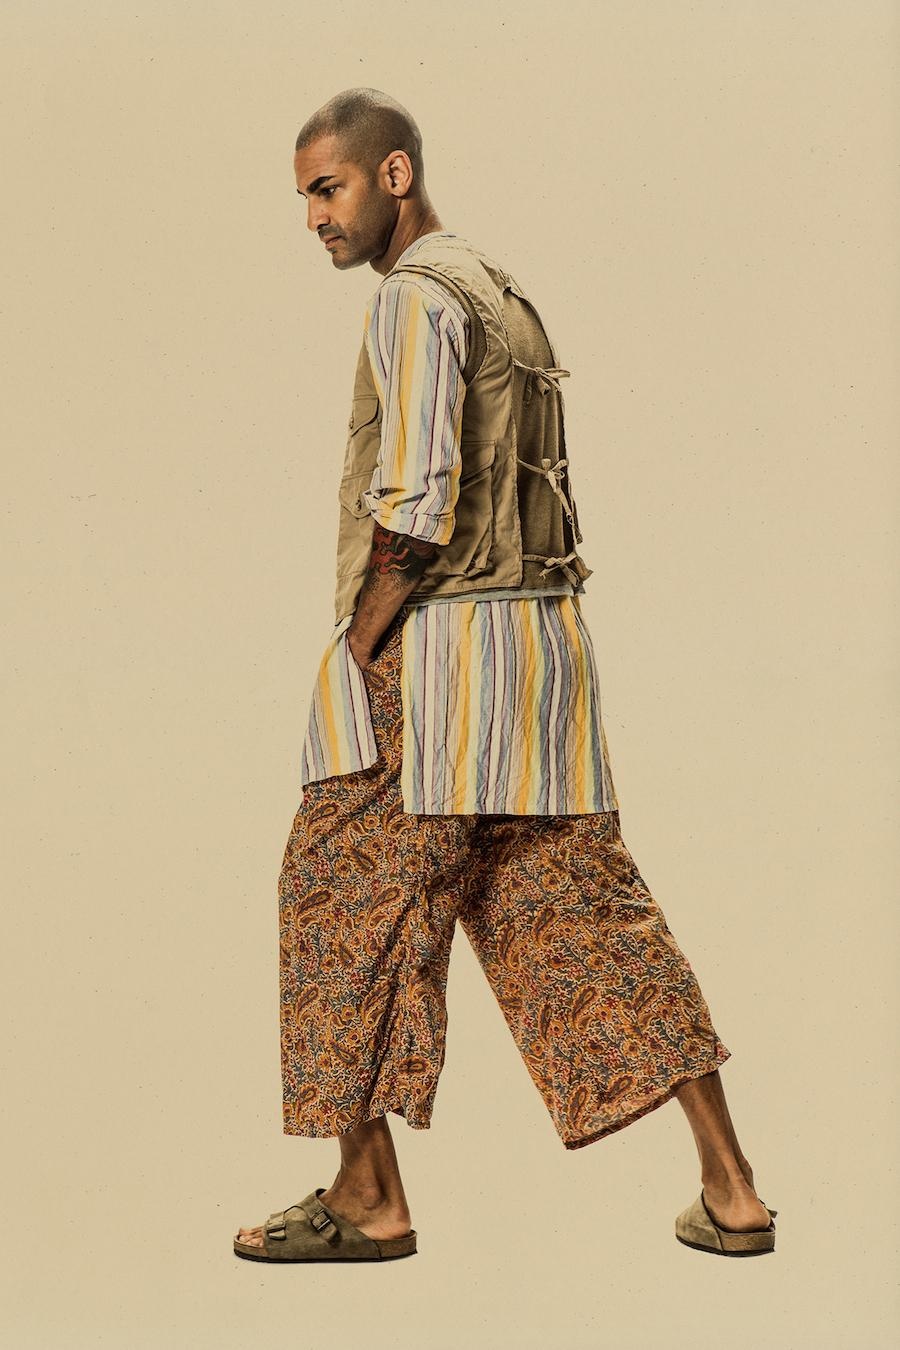 engineered-garments-springsummer-2015-collection-02.jpg